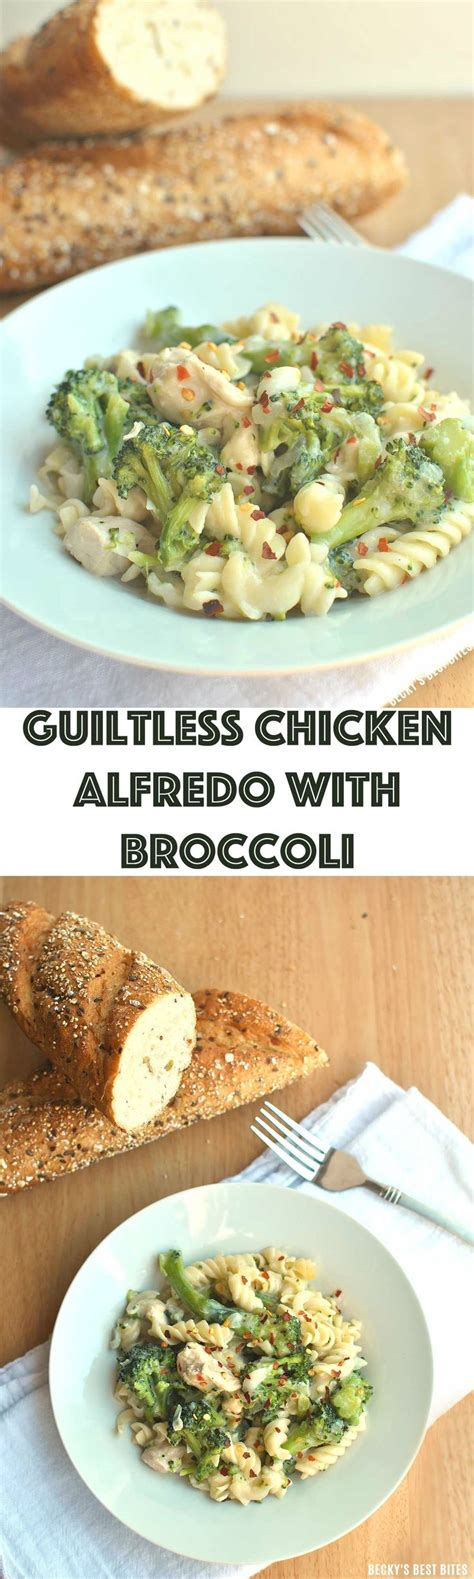 tasty dinner recipes guiltless chicken alfredo with broccoli is a tasty and healthy dinner recipe tha recipes from